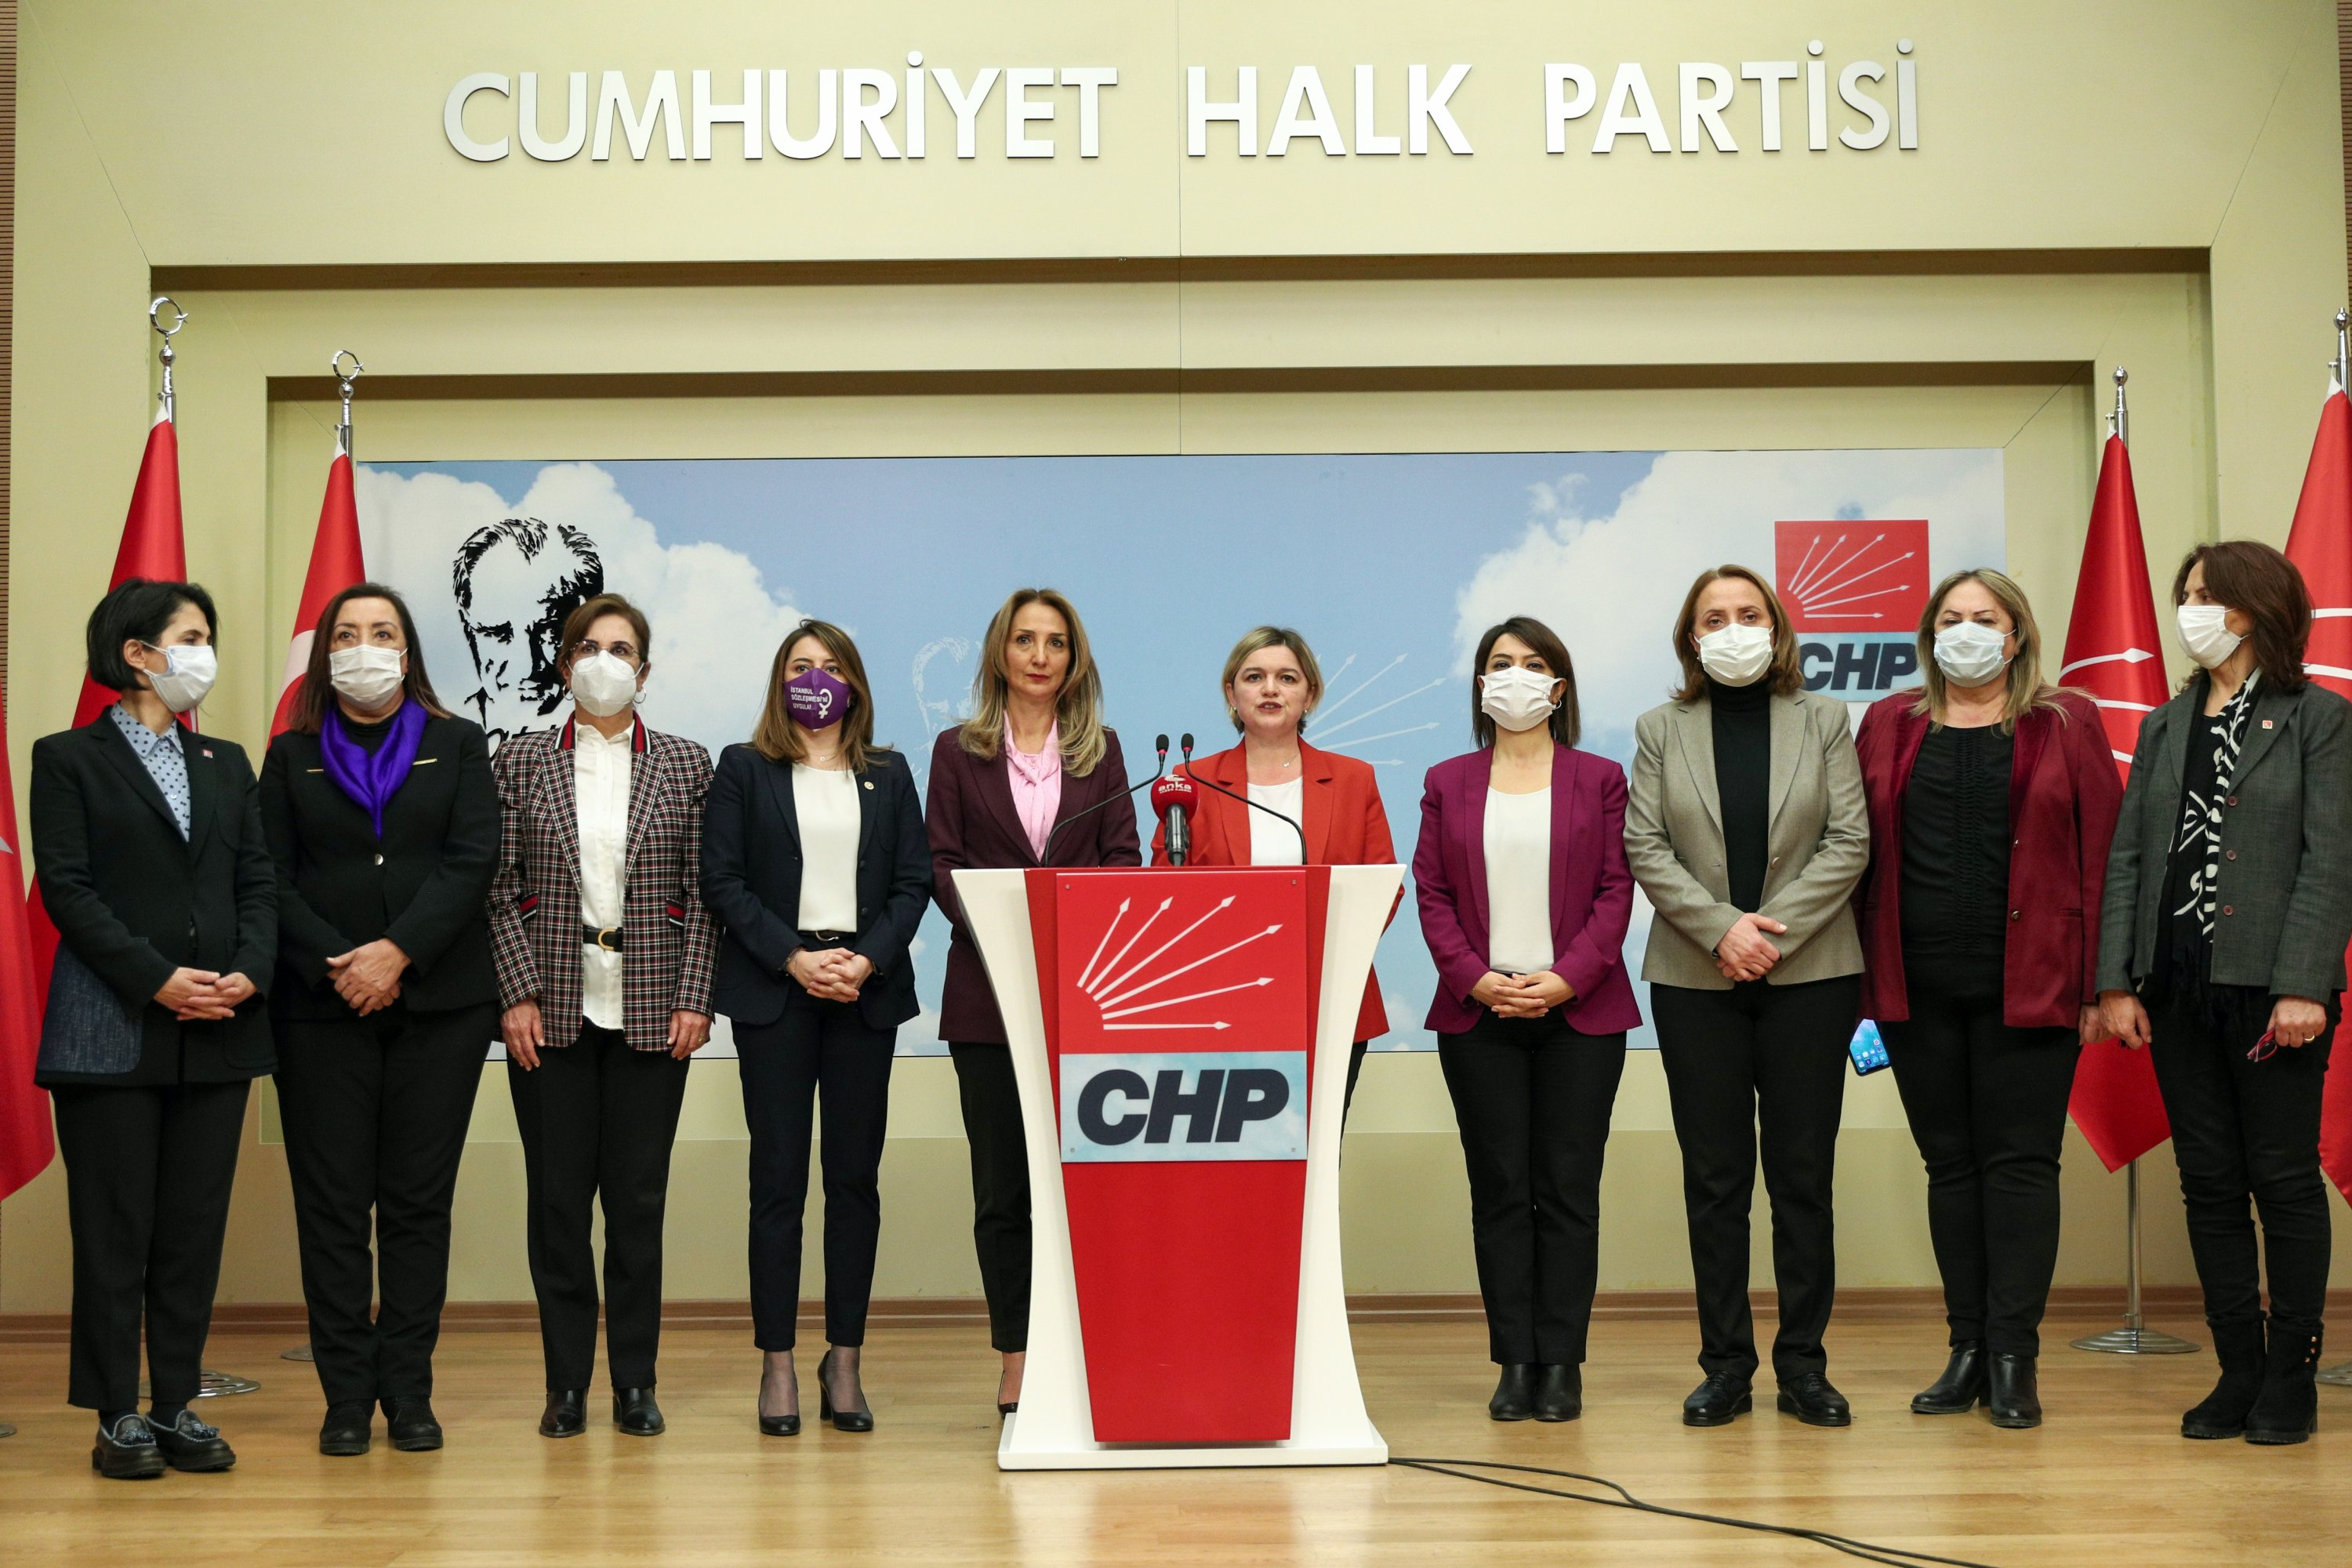 CHP's women executives including Secretary-General Selin Sayek Böke (5th R) and Women's Branch Chairperson Aylin Nazlıaka (5th L) held a press conference at the party headquarters in the capital Ankara, March 20, 2021. (CHP via AA)